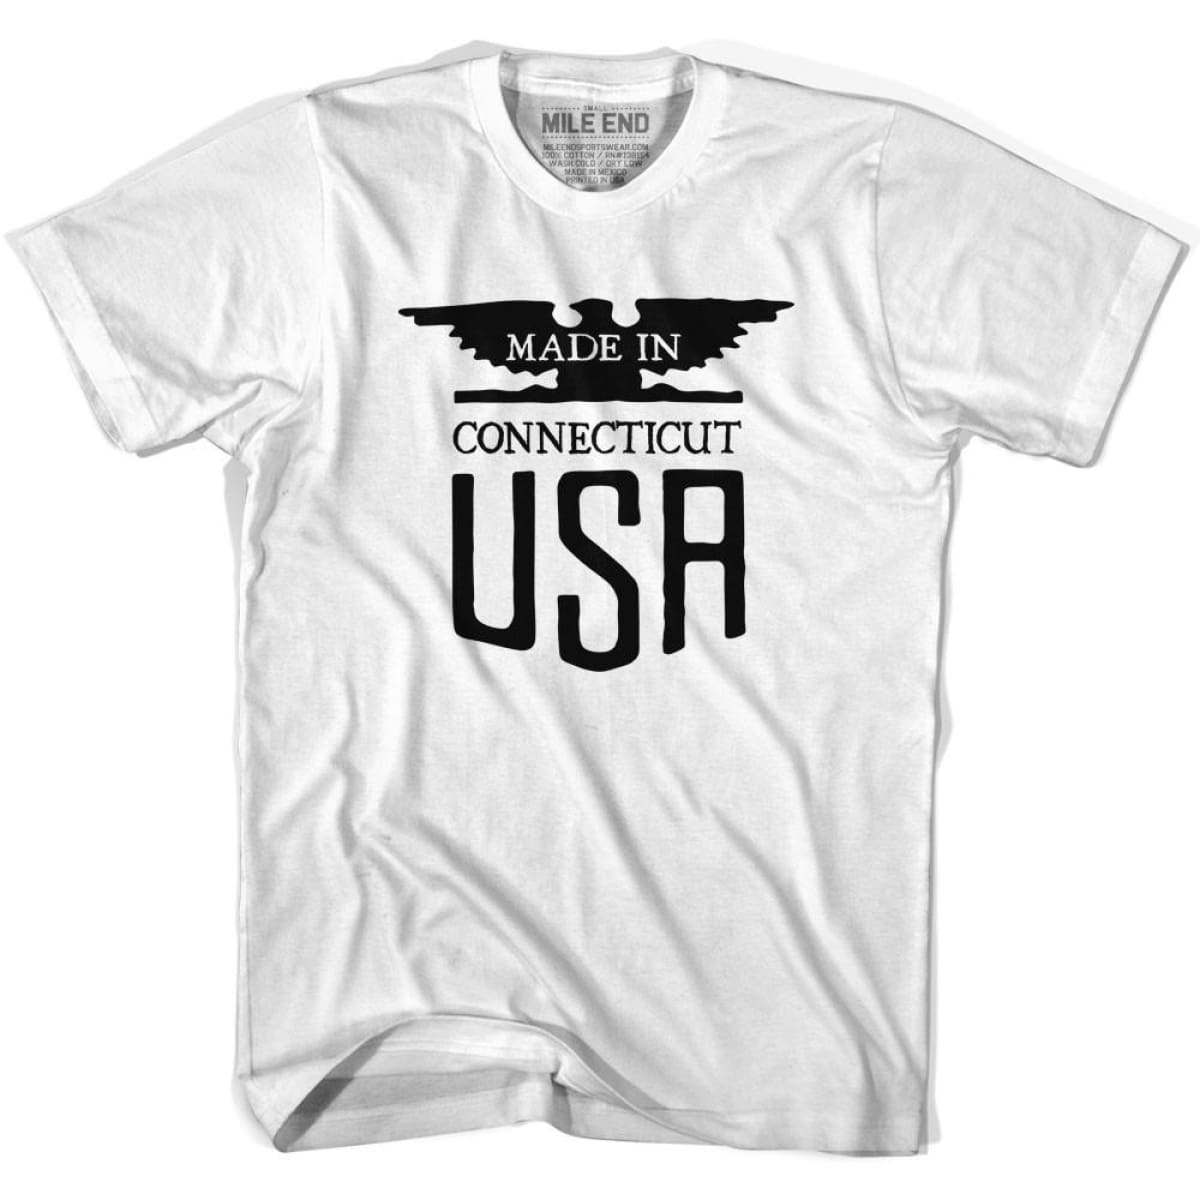 Connecticut Vintage Eagle T-shirt - White / Youth X-Small - Made in Eagle